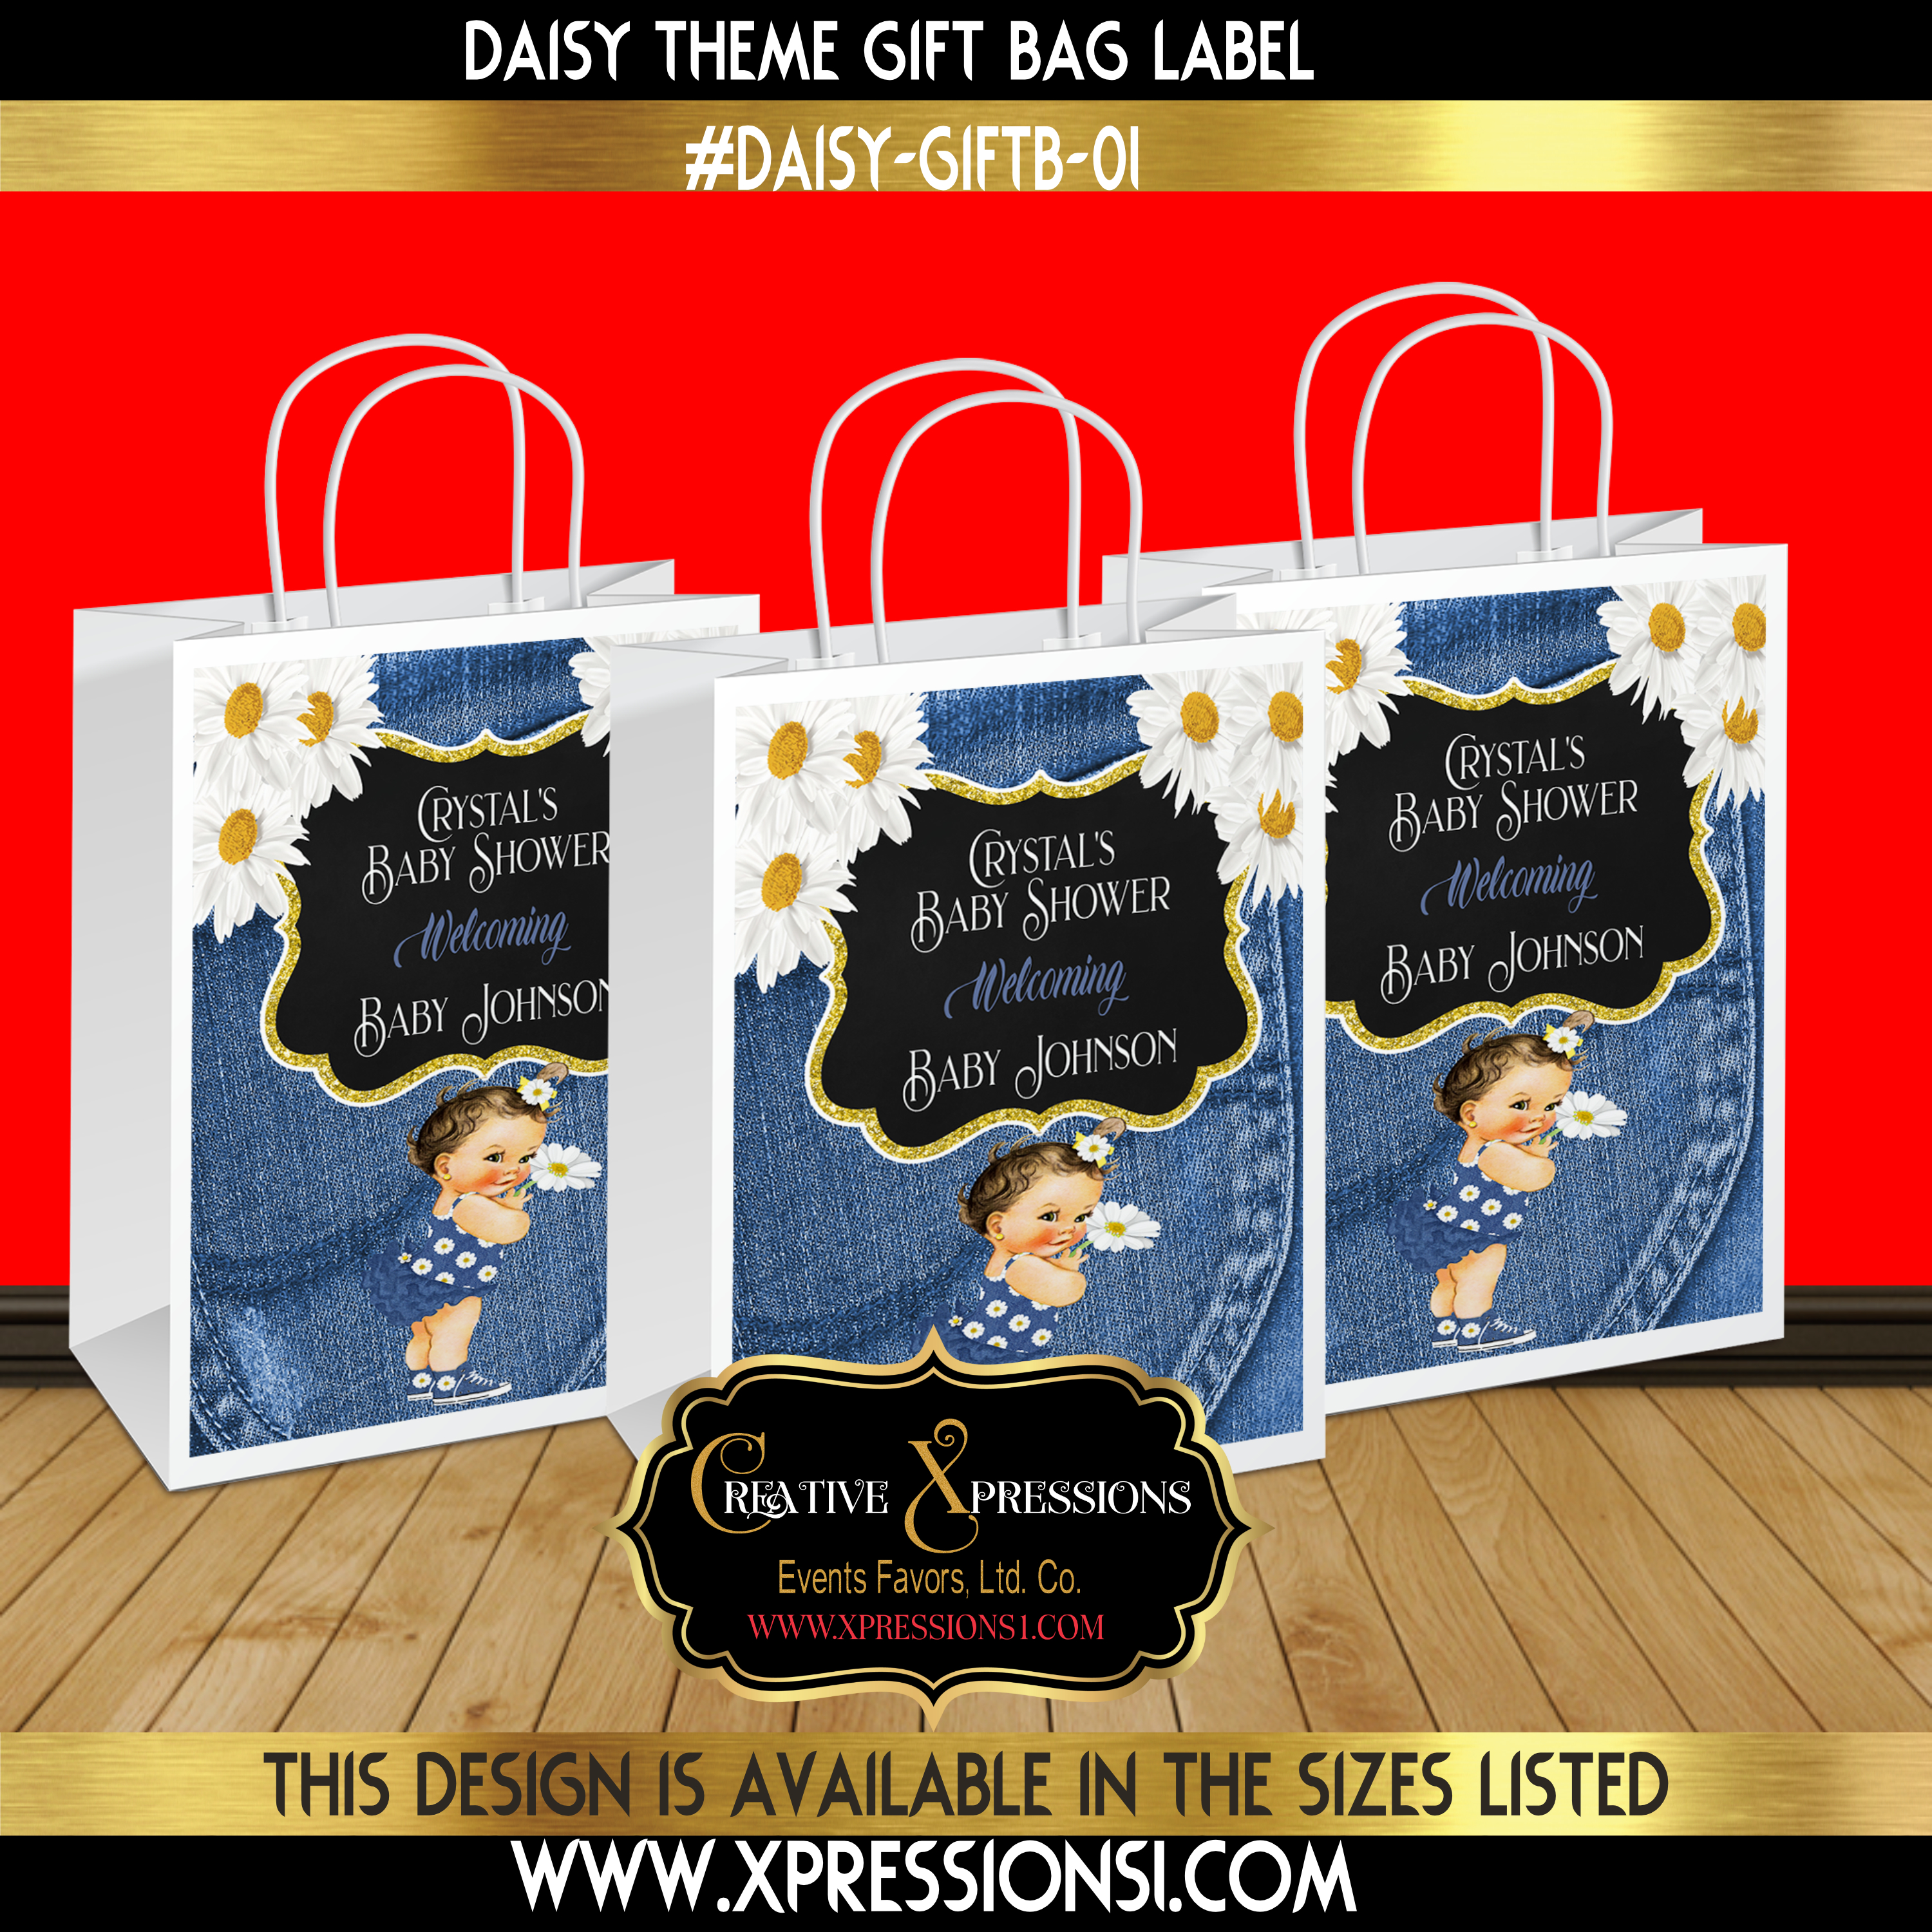 Daisy and Denim Gift Bag Label